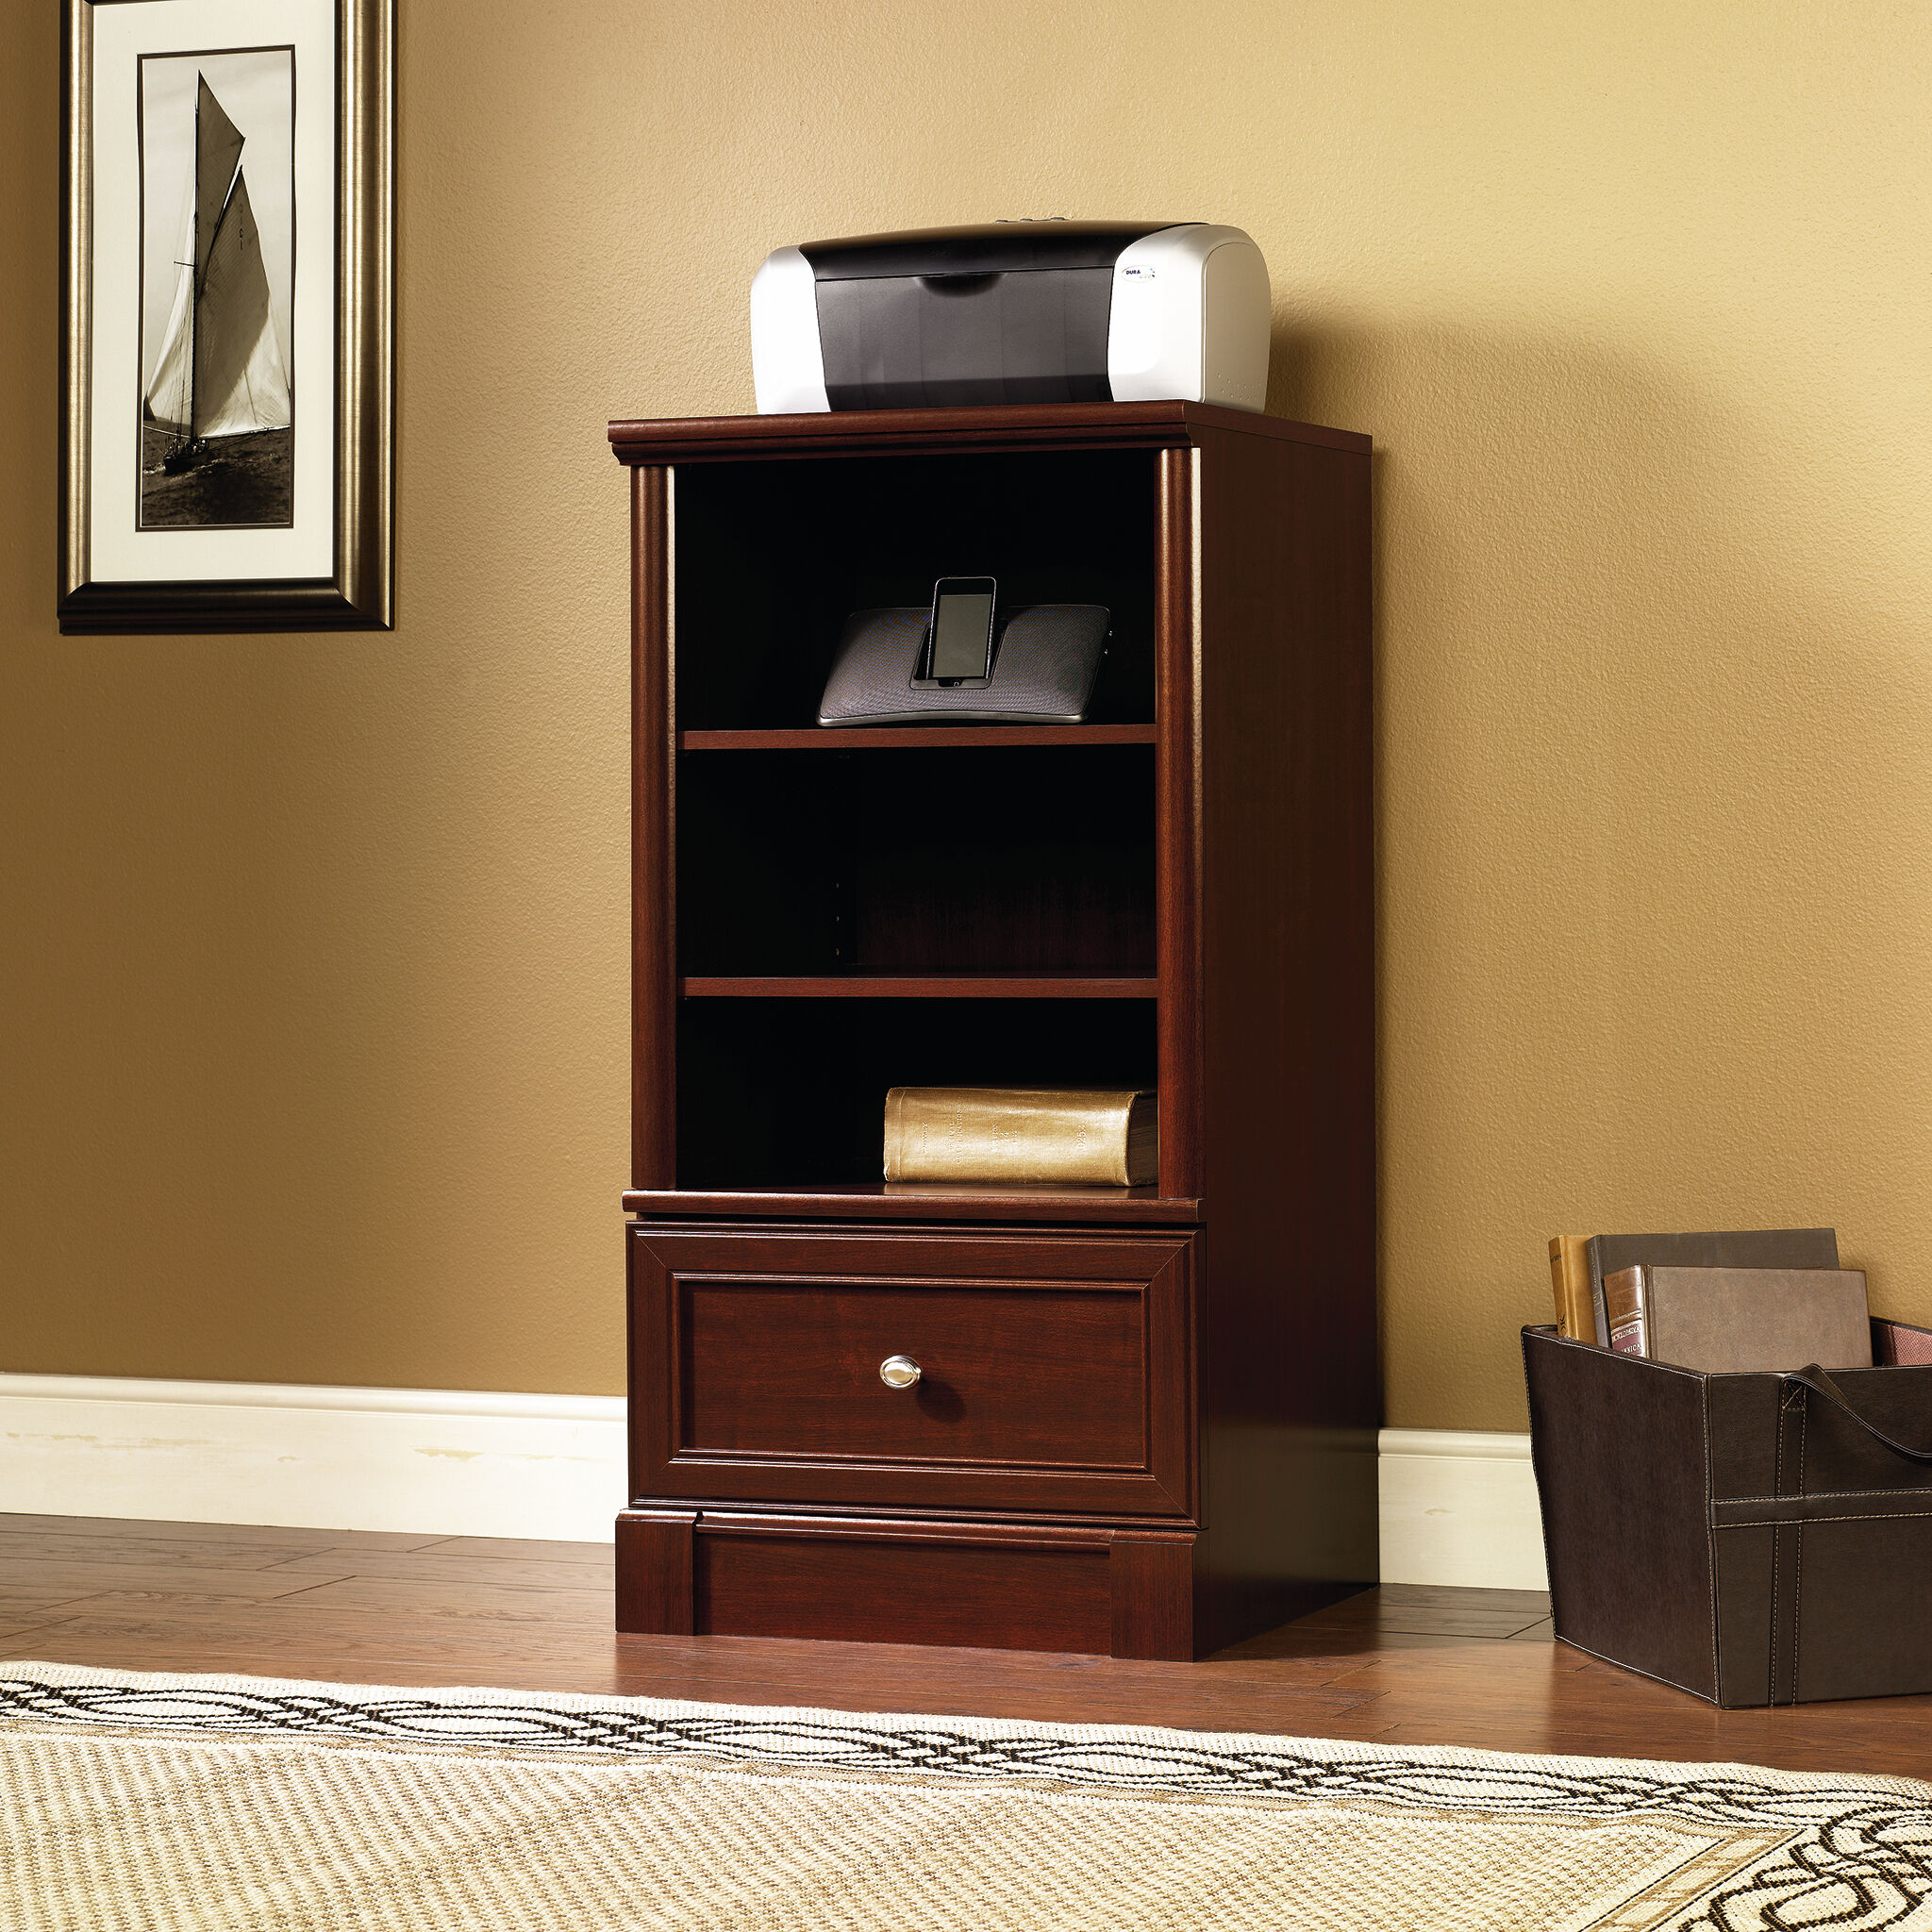 TwoShelf Traditional Technology Pier in Cherry  Mathis